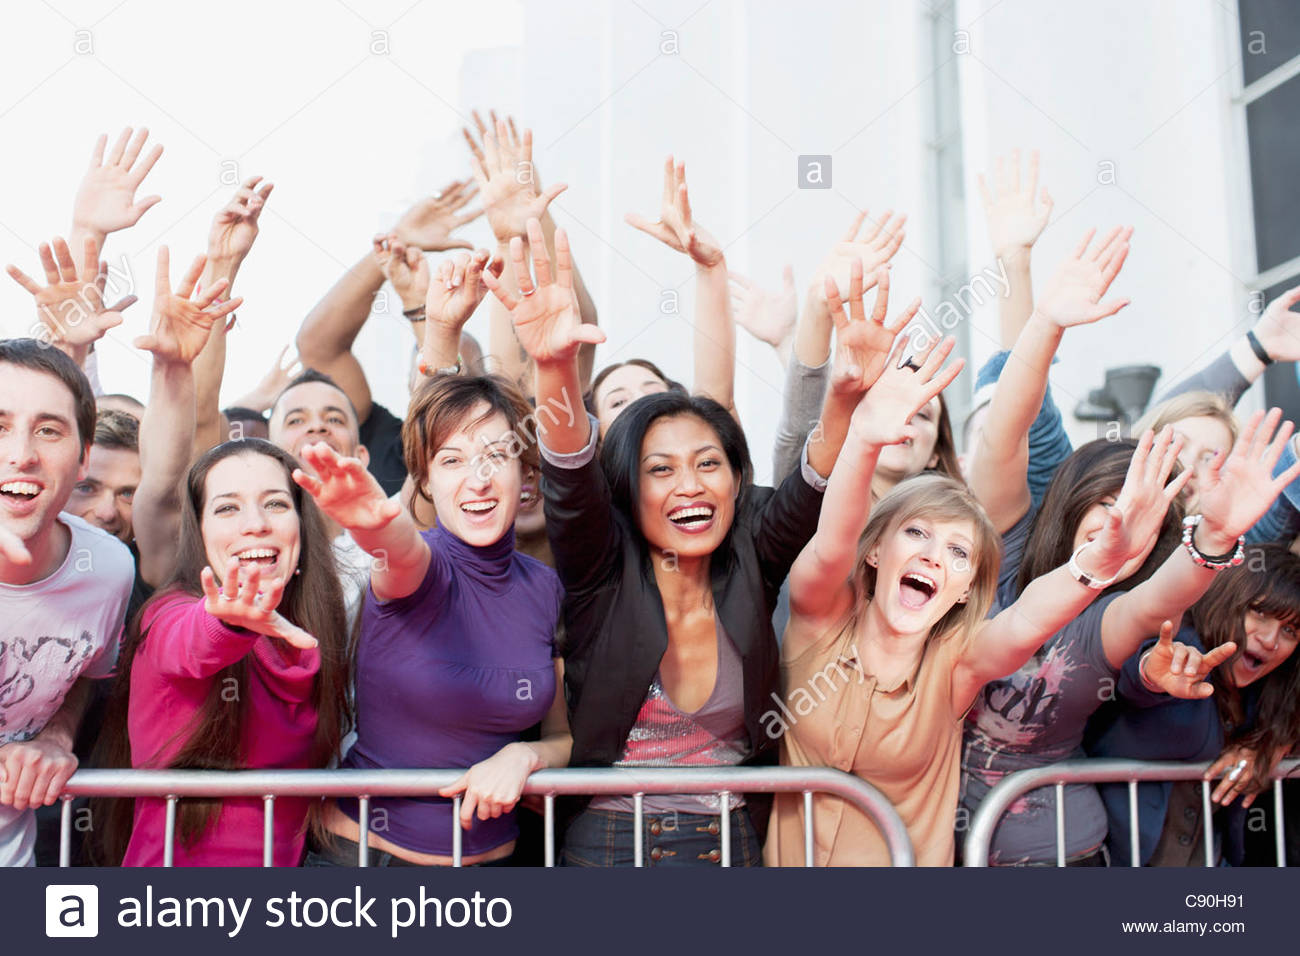 Fans reaching out over barrier - Stock Image